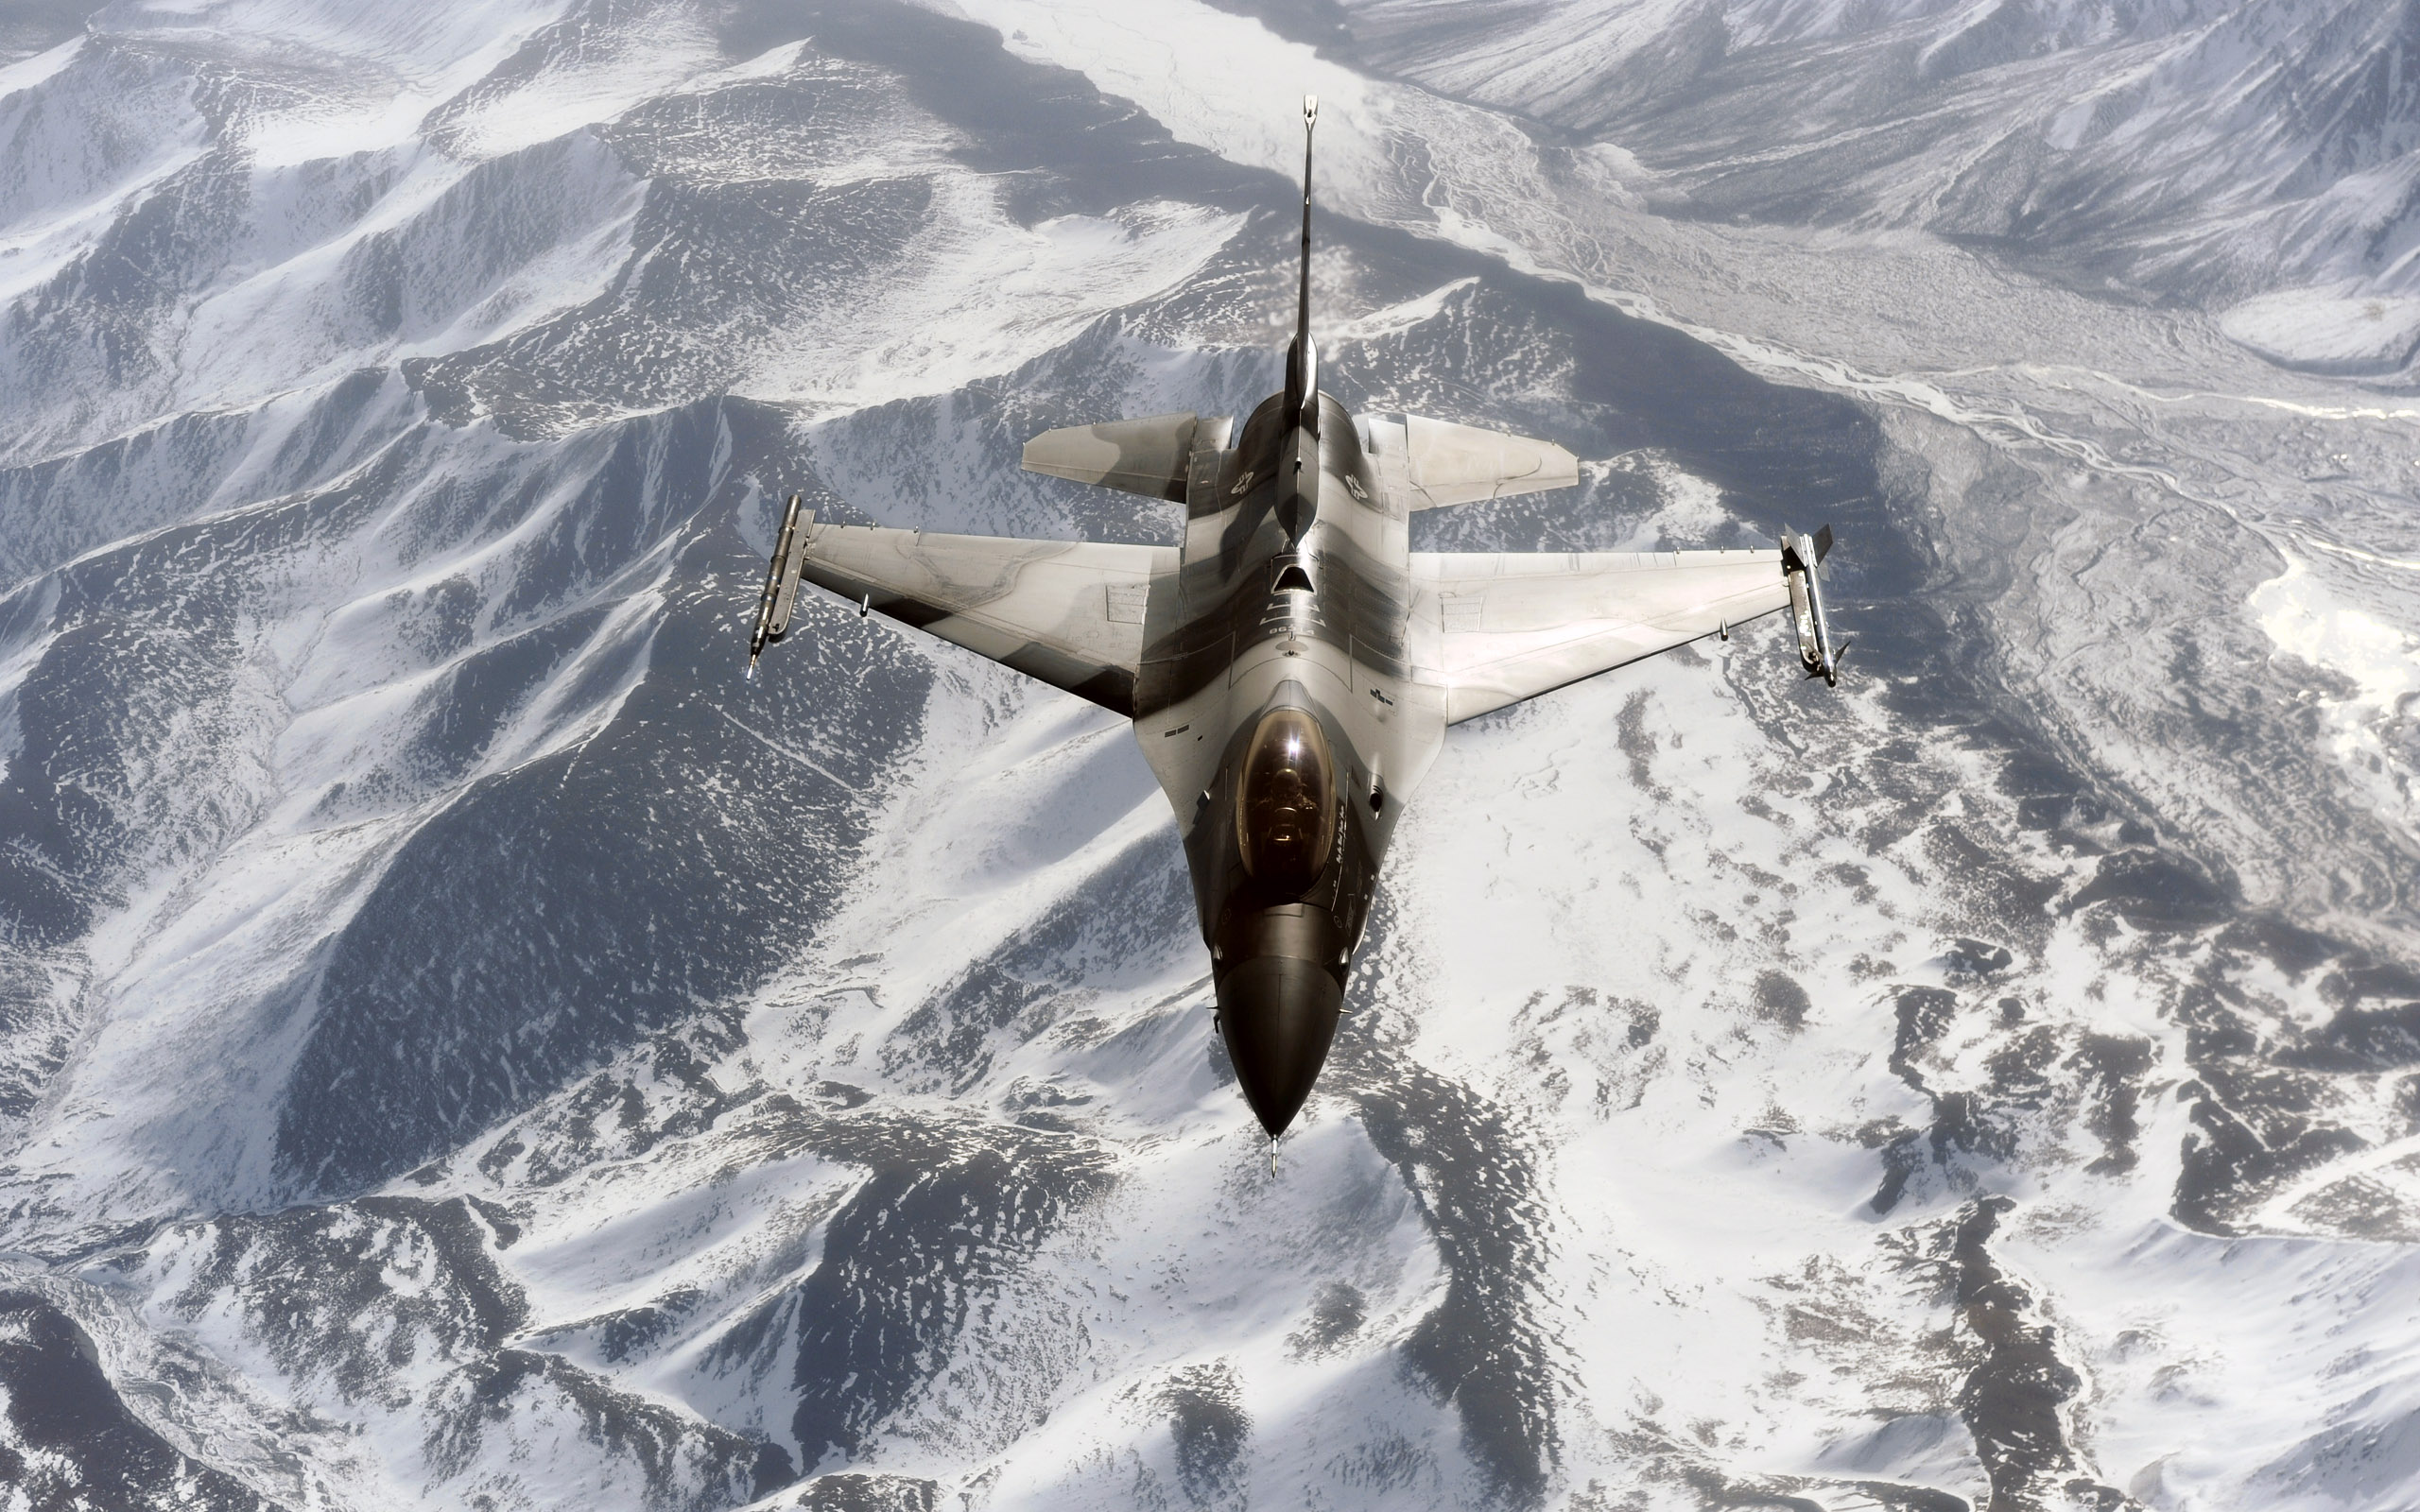 F Aggressor Over the Joint Pacific Alaskan Range wallpaper